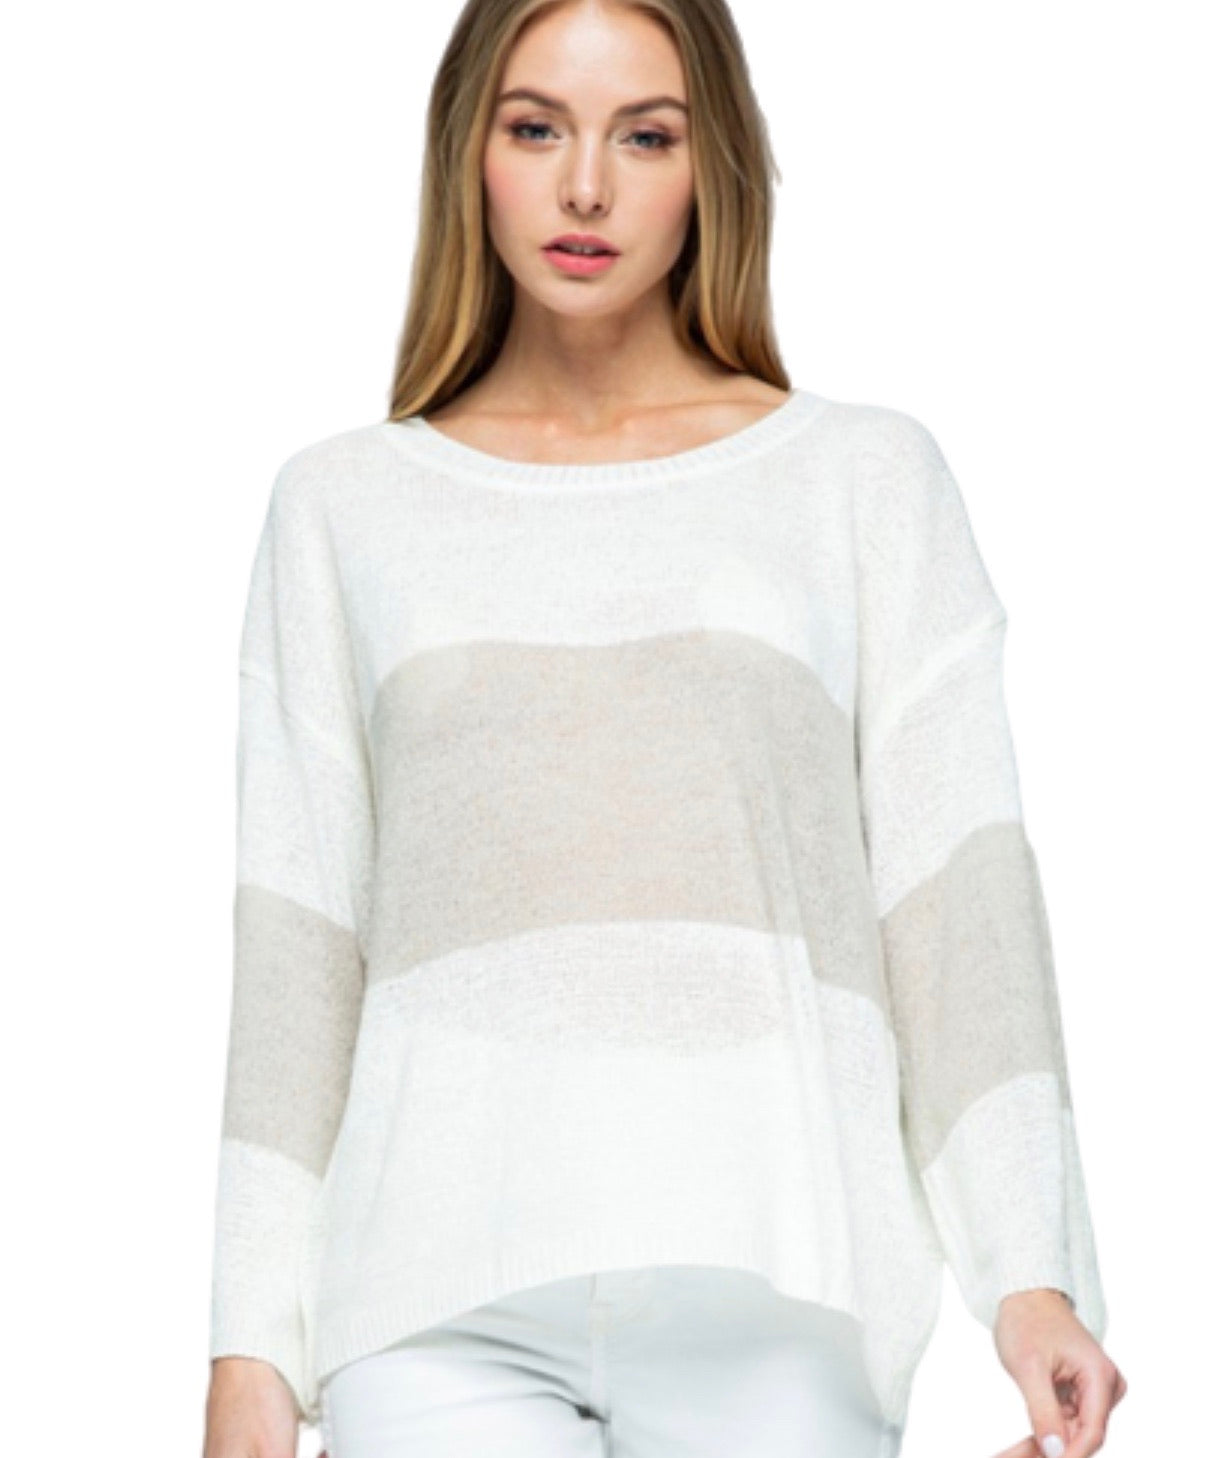 New !  Allison Lightweight Knit Sweater - Glamco Boutique